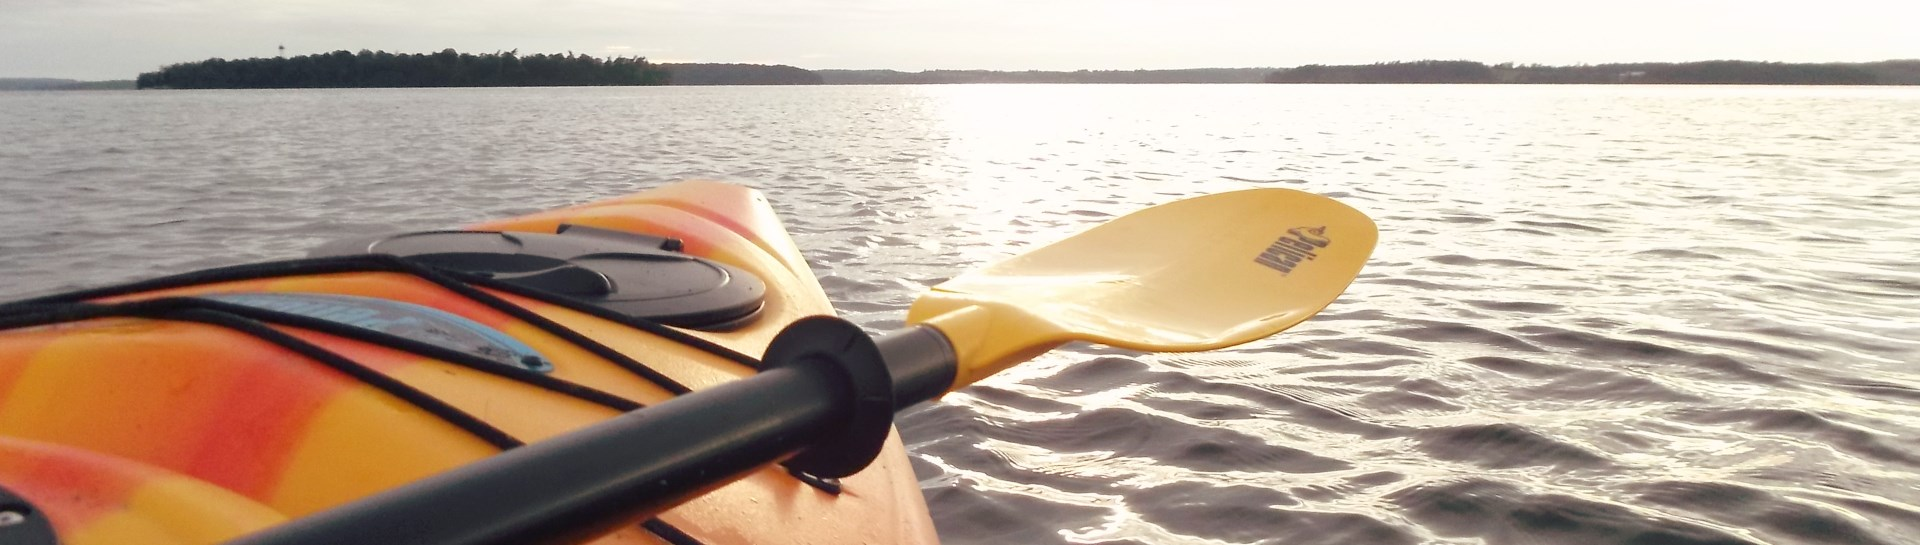 Tip of kayak and oar on lake with land in background